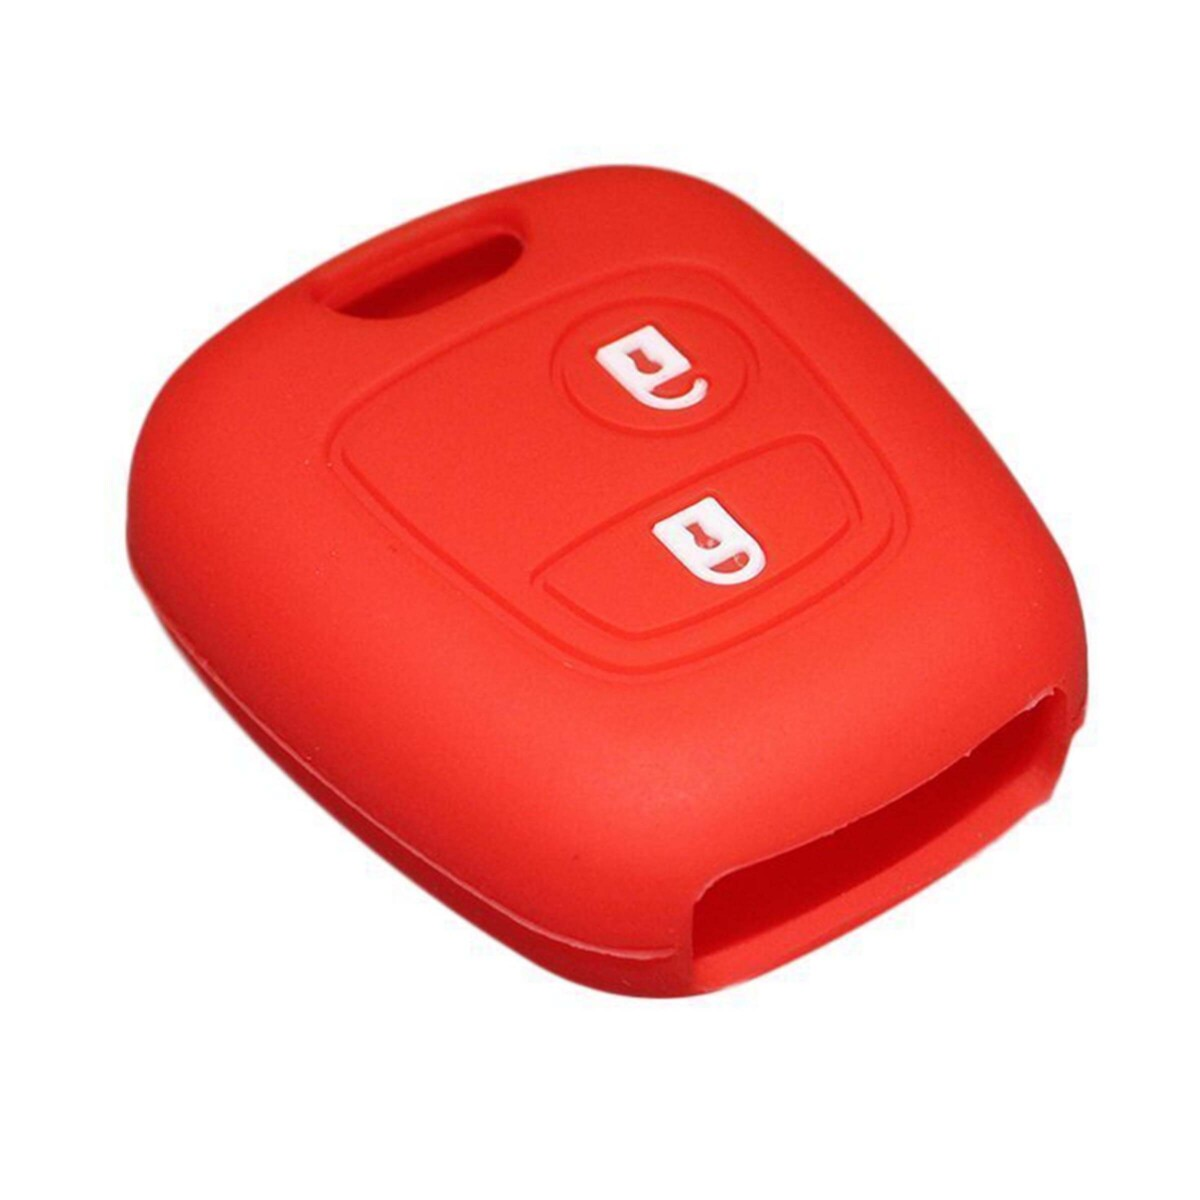 peugeot-206-Switch-silicone-red